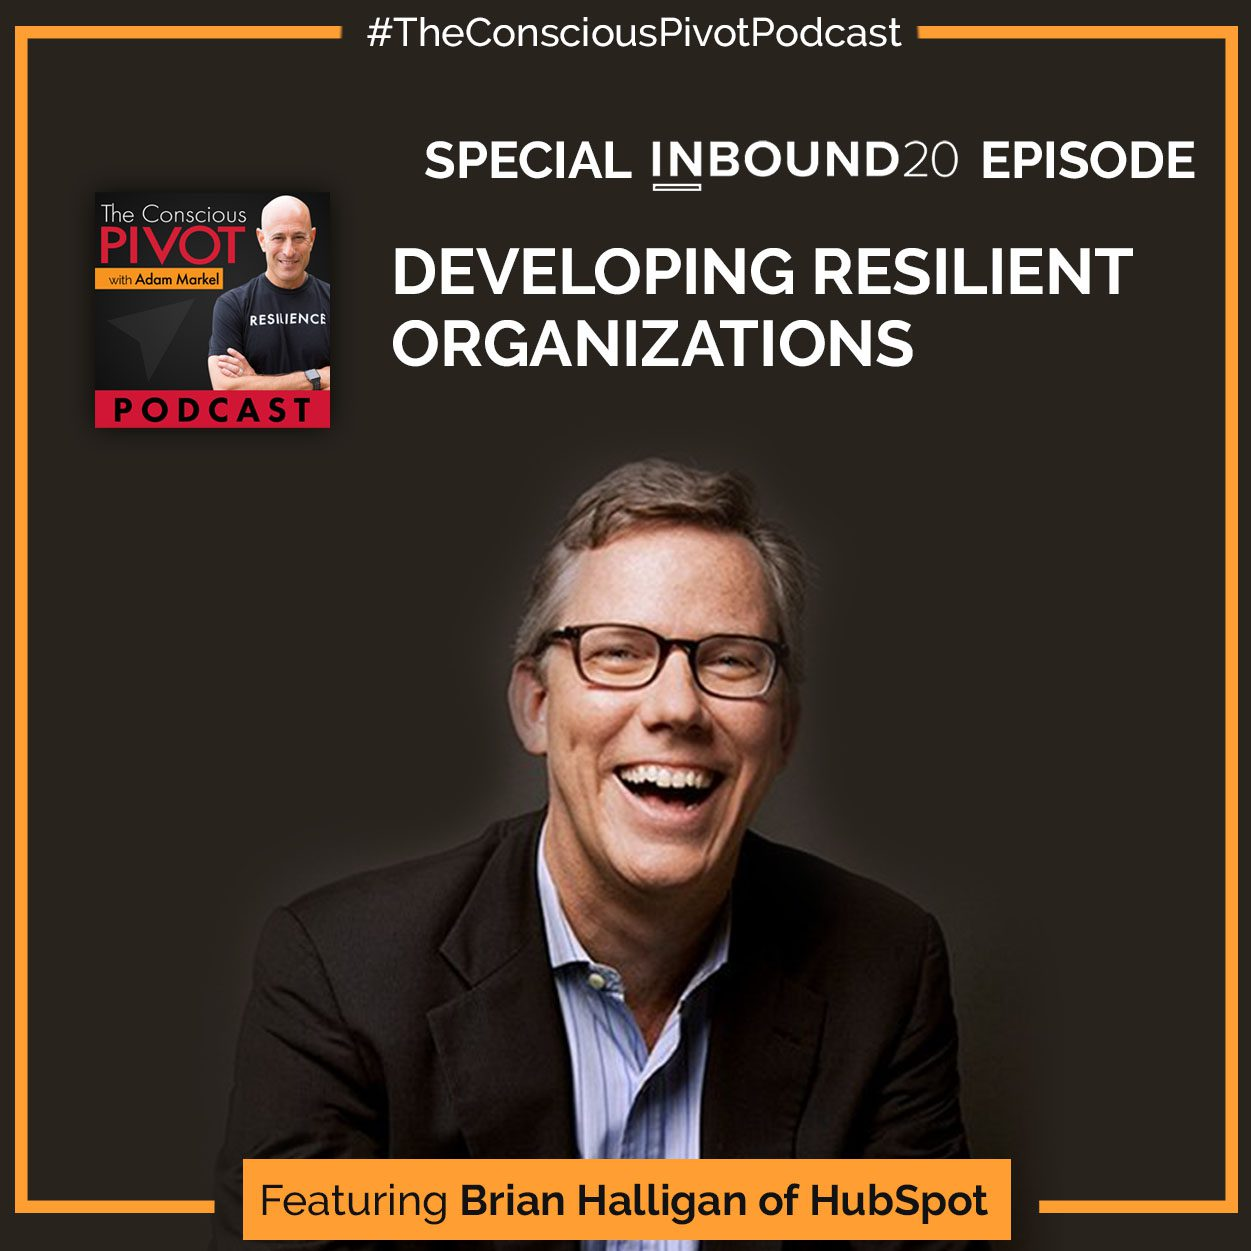 Developing Resilient Organizations Featuring Brian Halligan of HubSpot